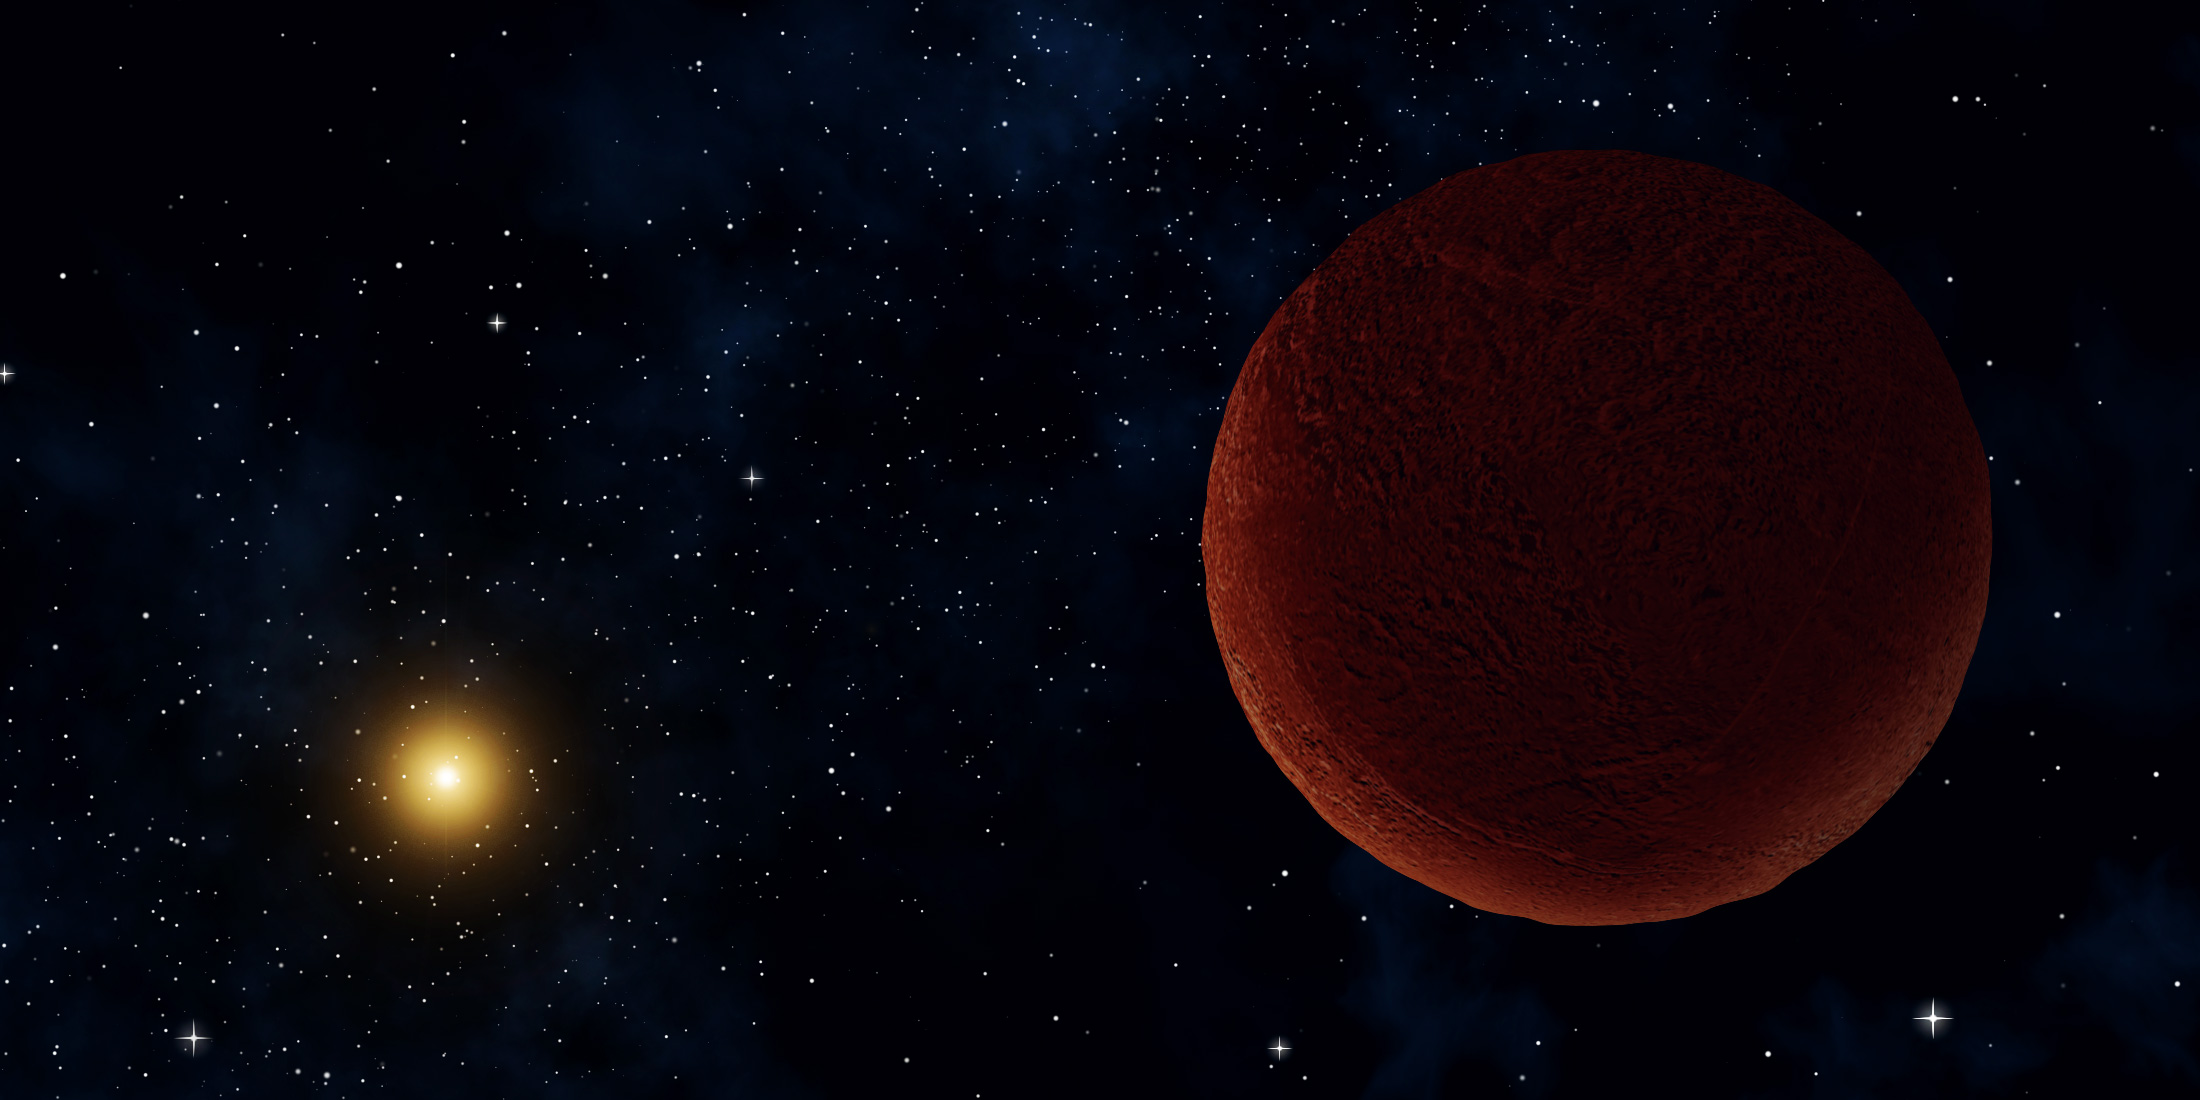 Illustration of a dwarf planet with stars and the Sun in the background.